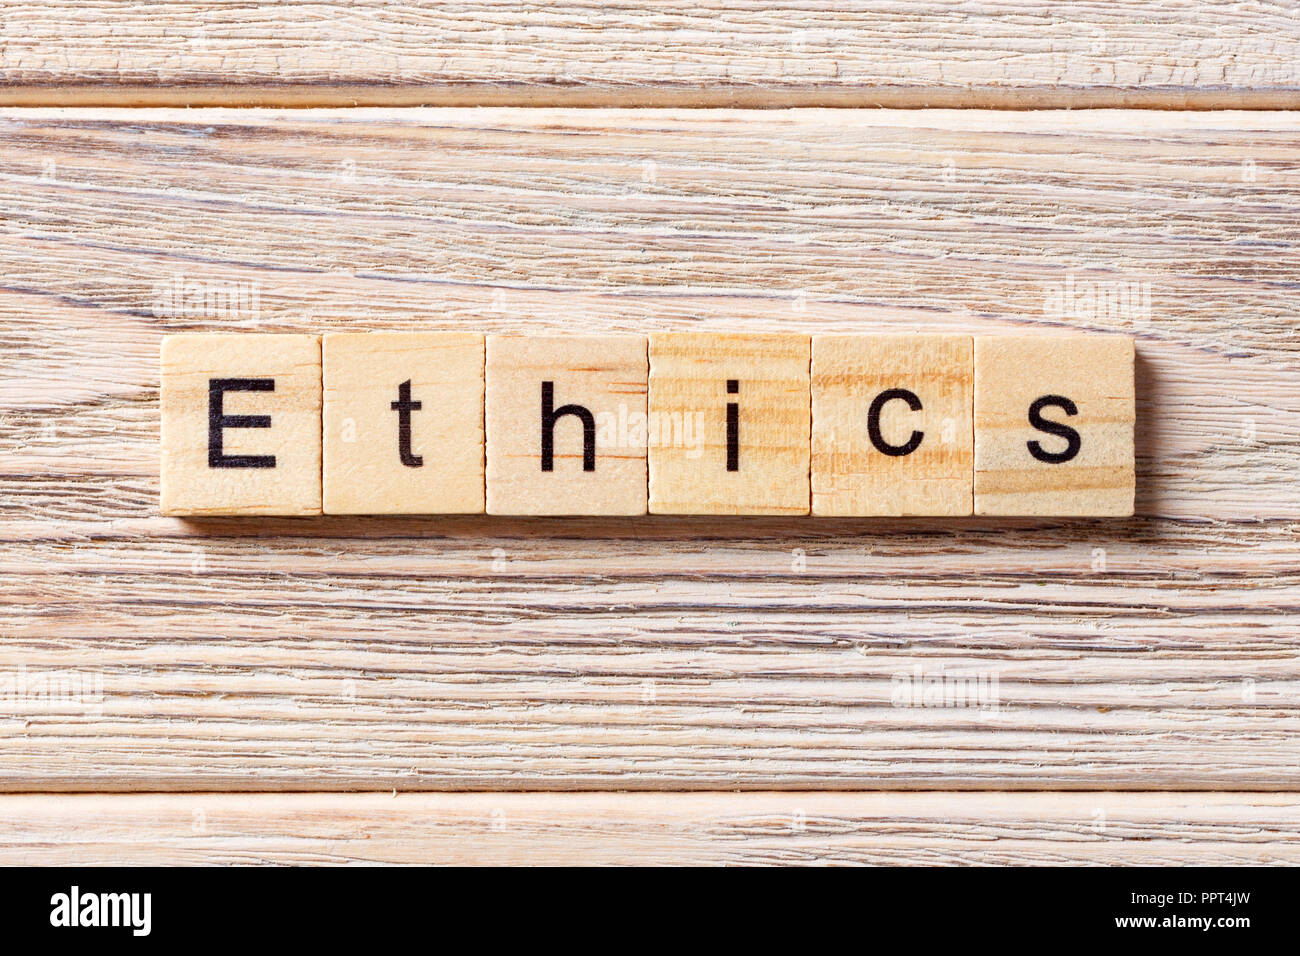 Ethics word written on wood block. Ethics text on table, concept. - Stock Image